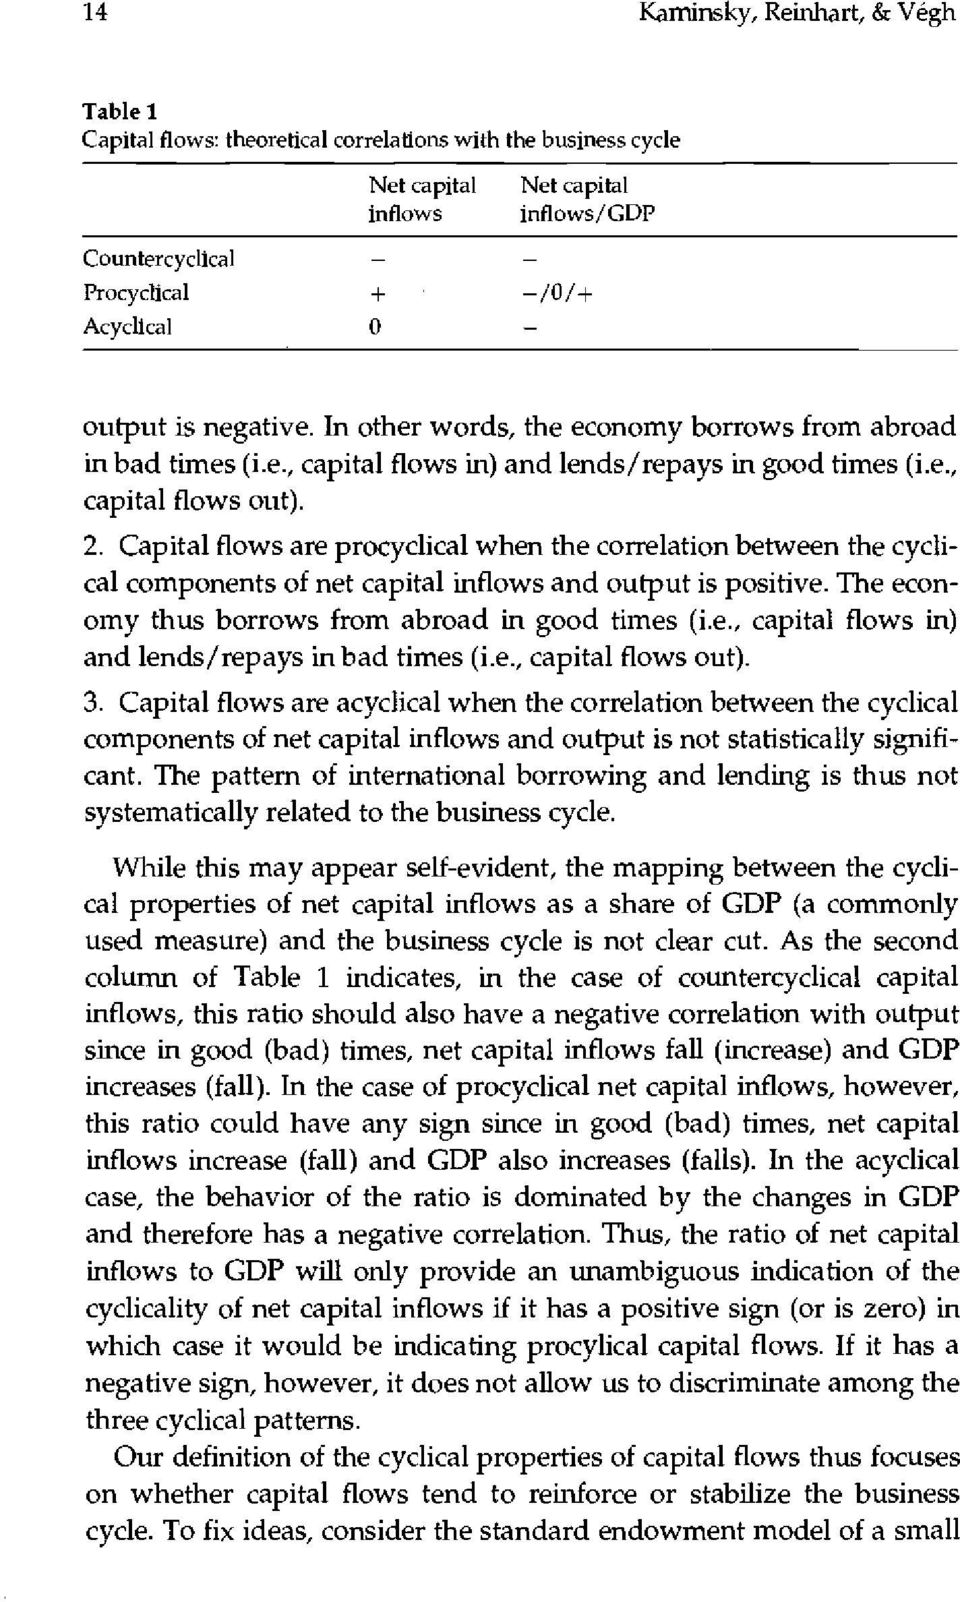 Capital flows are procyclical when the correlation between the cyclical components of net capital inflows and output is positive. The economy thus borrows from abroad in good times (i.e., capital flows in) and lends/repays in bad times (i.